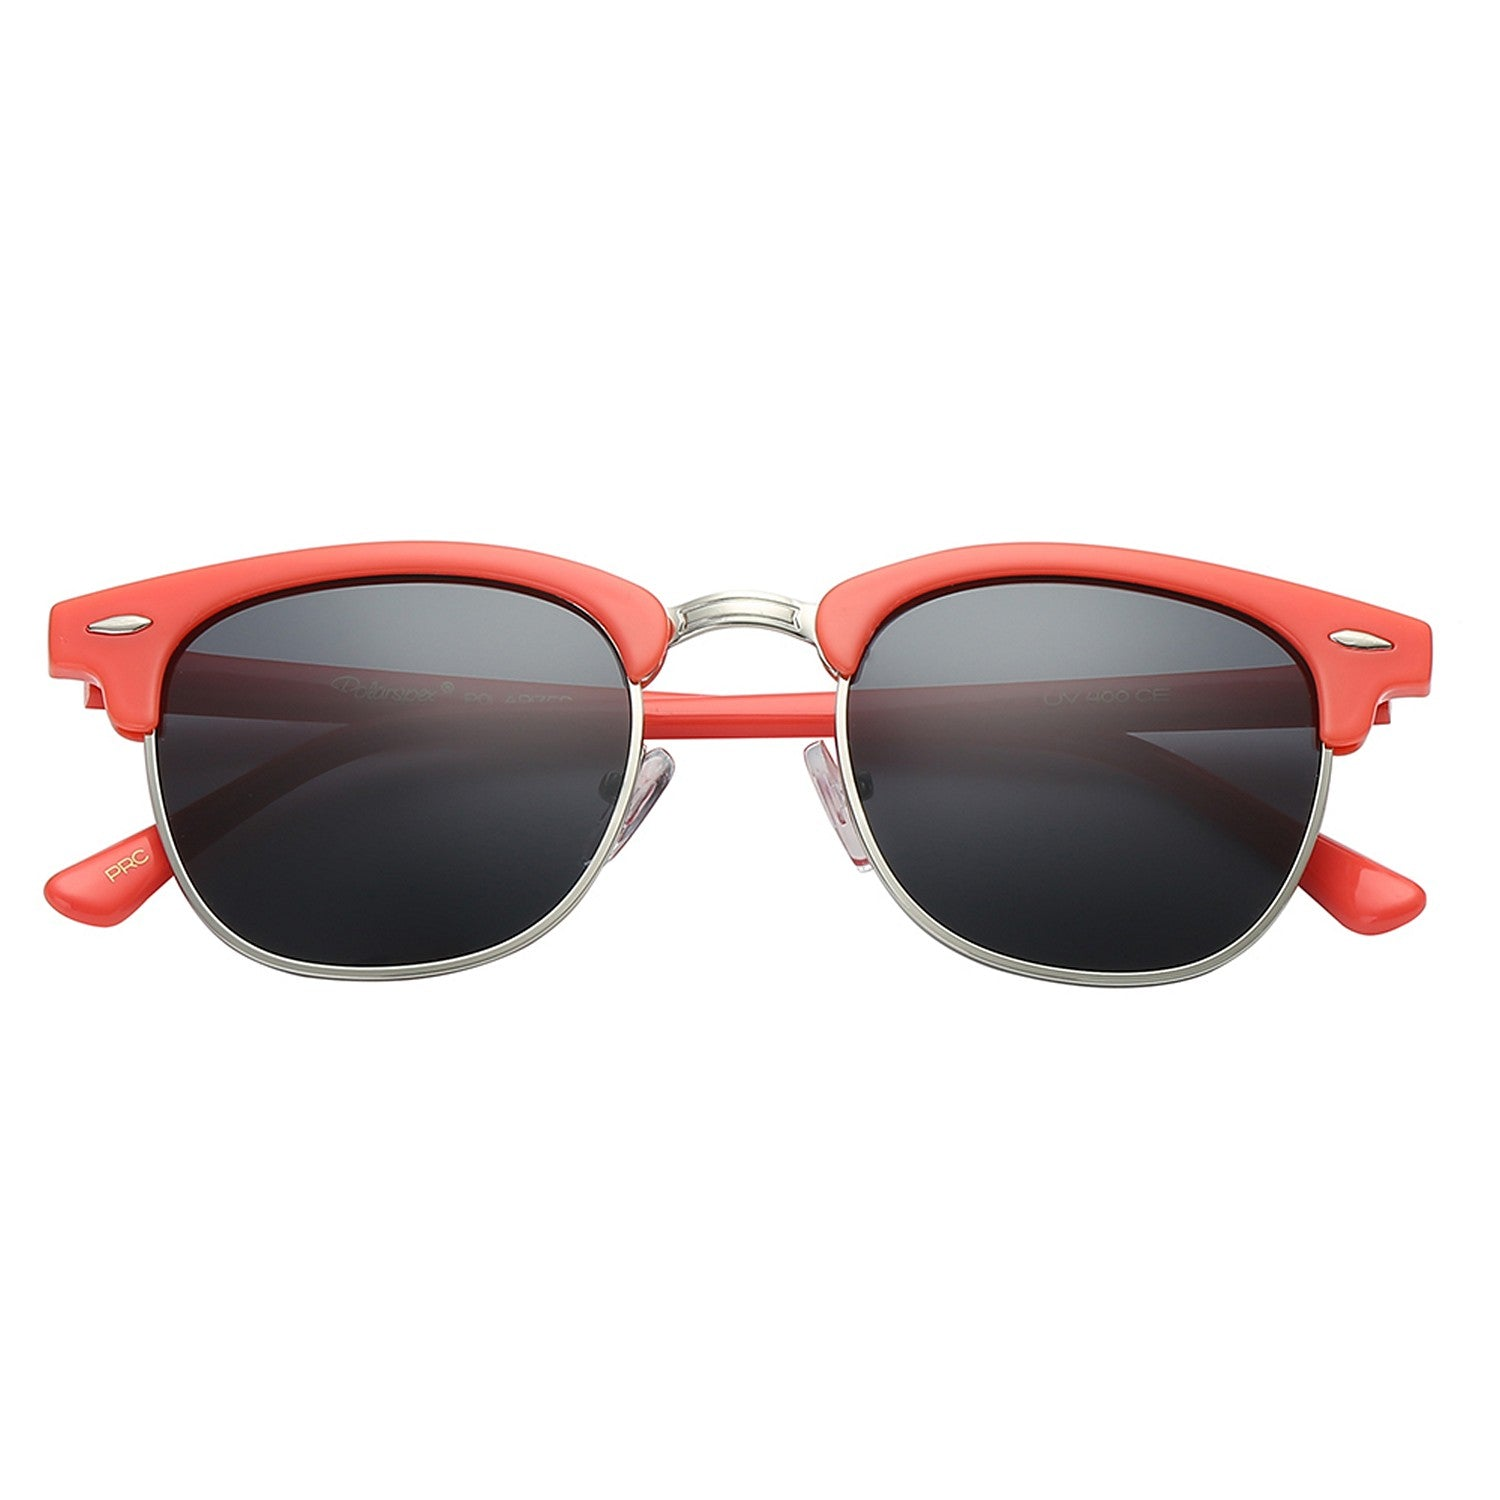 Polarspex Polarized Malcom Half Frame Semi-Rimless Style Unisex Sunglasses with Ocean Coral Frames and Ash Brown Lenses